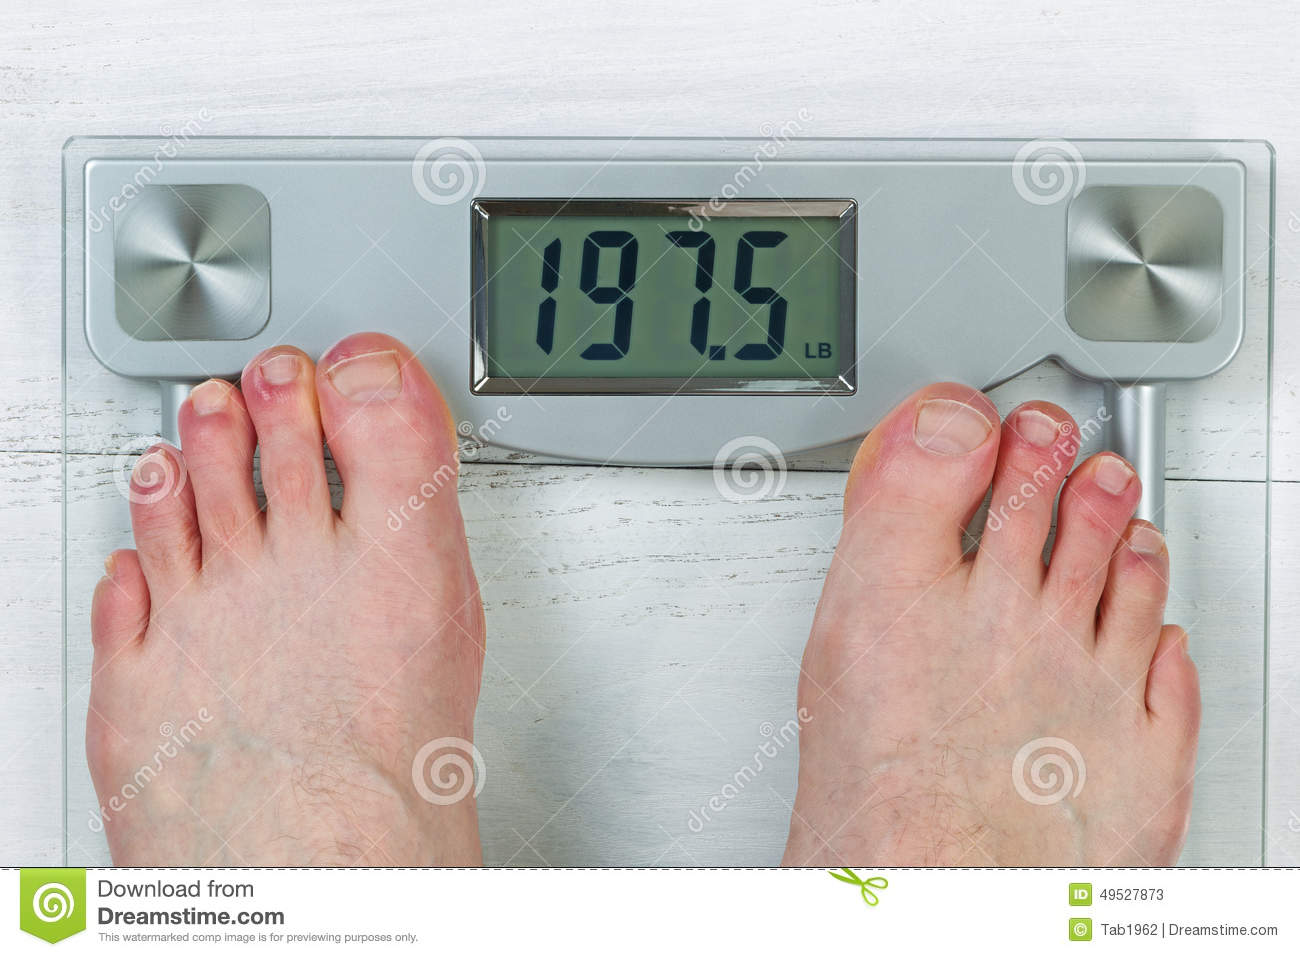 Checking Body Weight On Scale Stock Photo